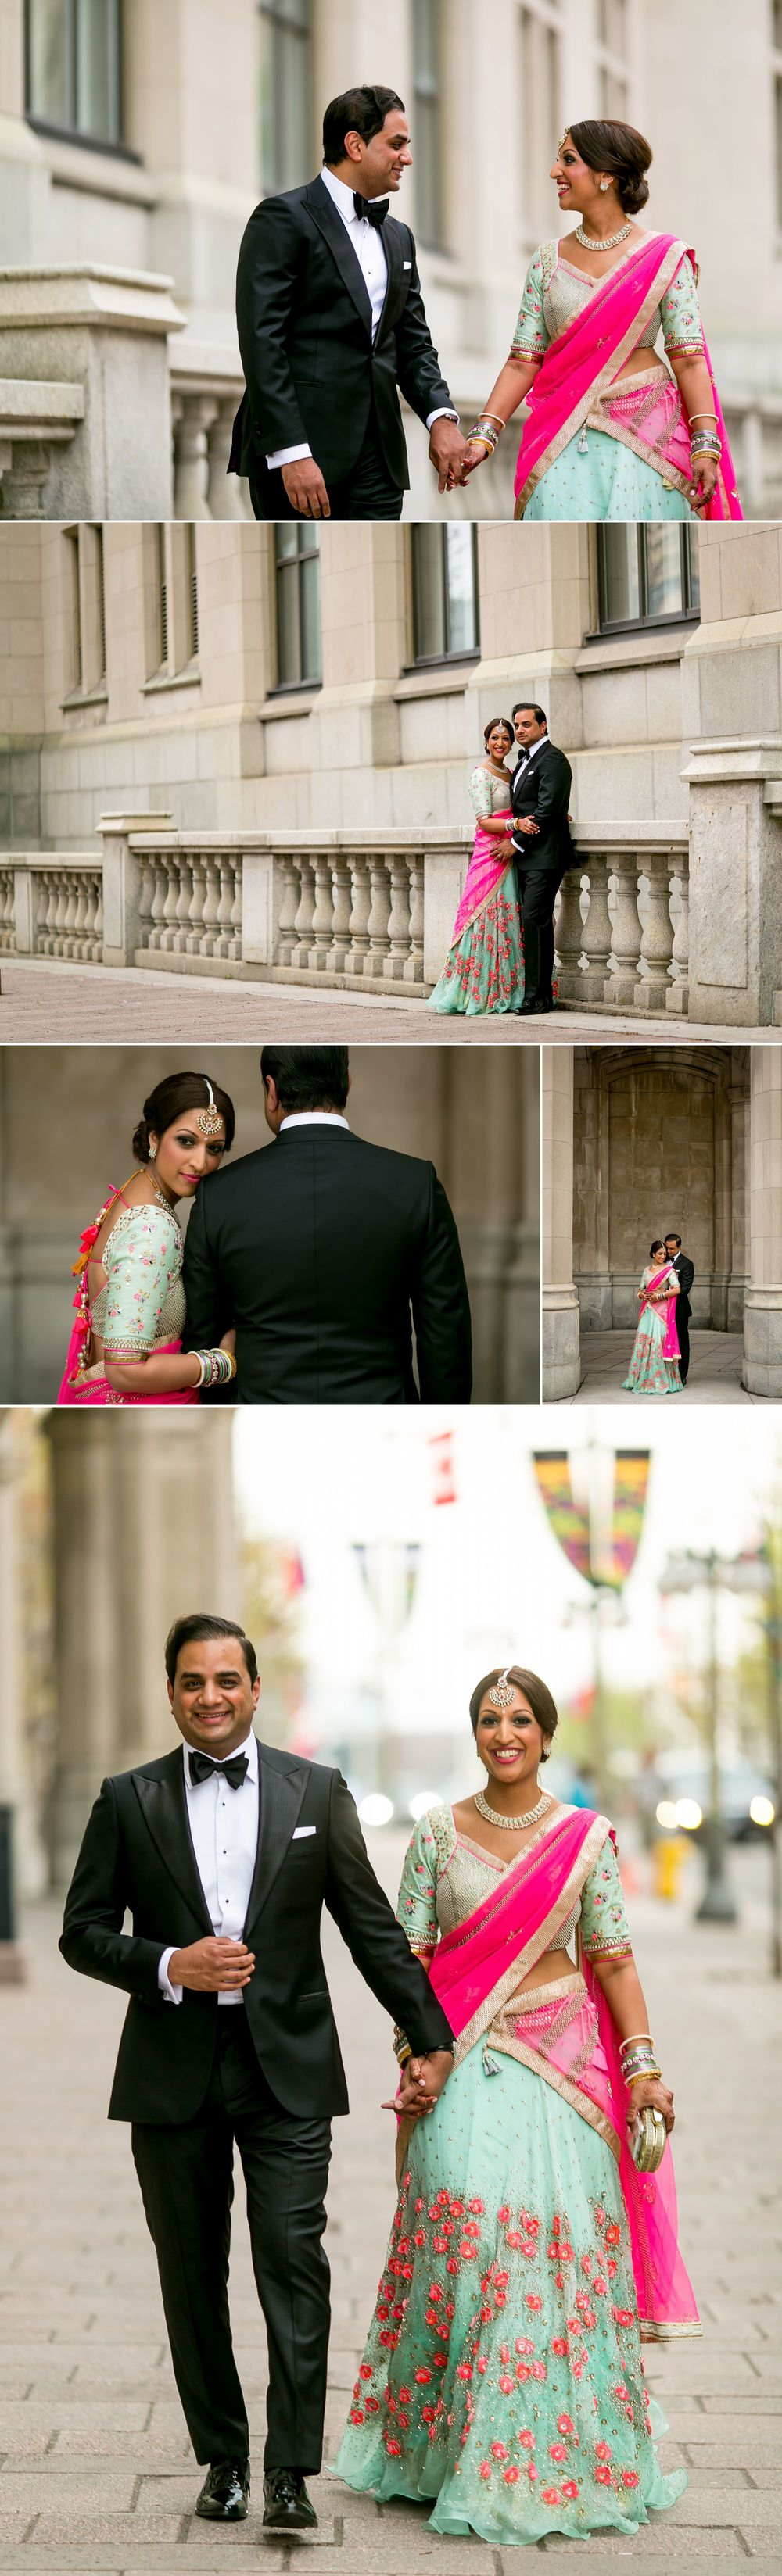 Wedding photographs of an Indian couple in Ottawa